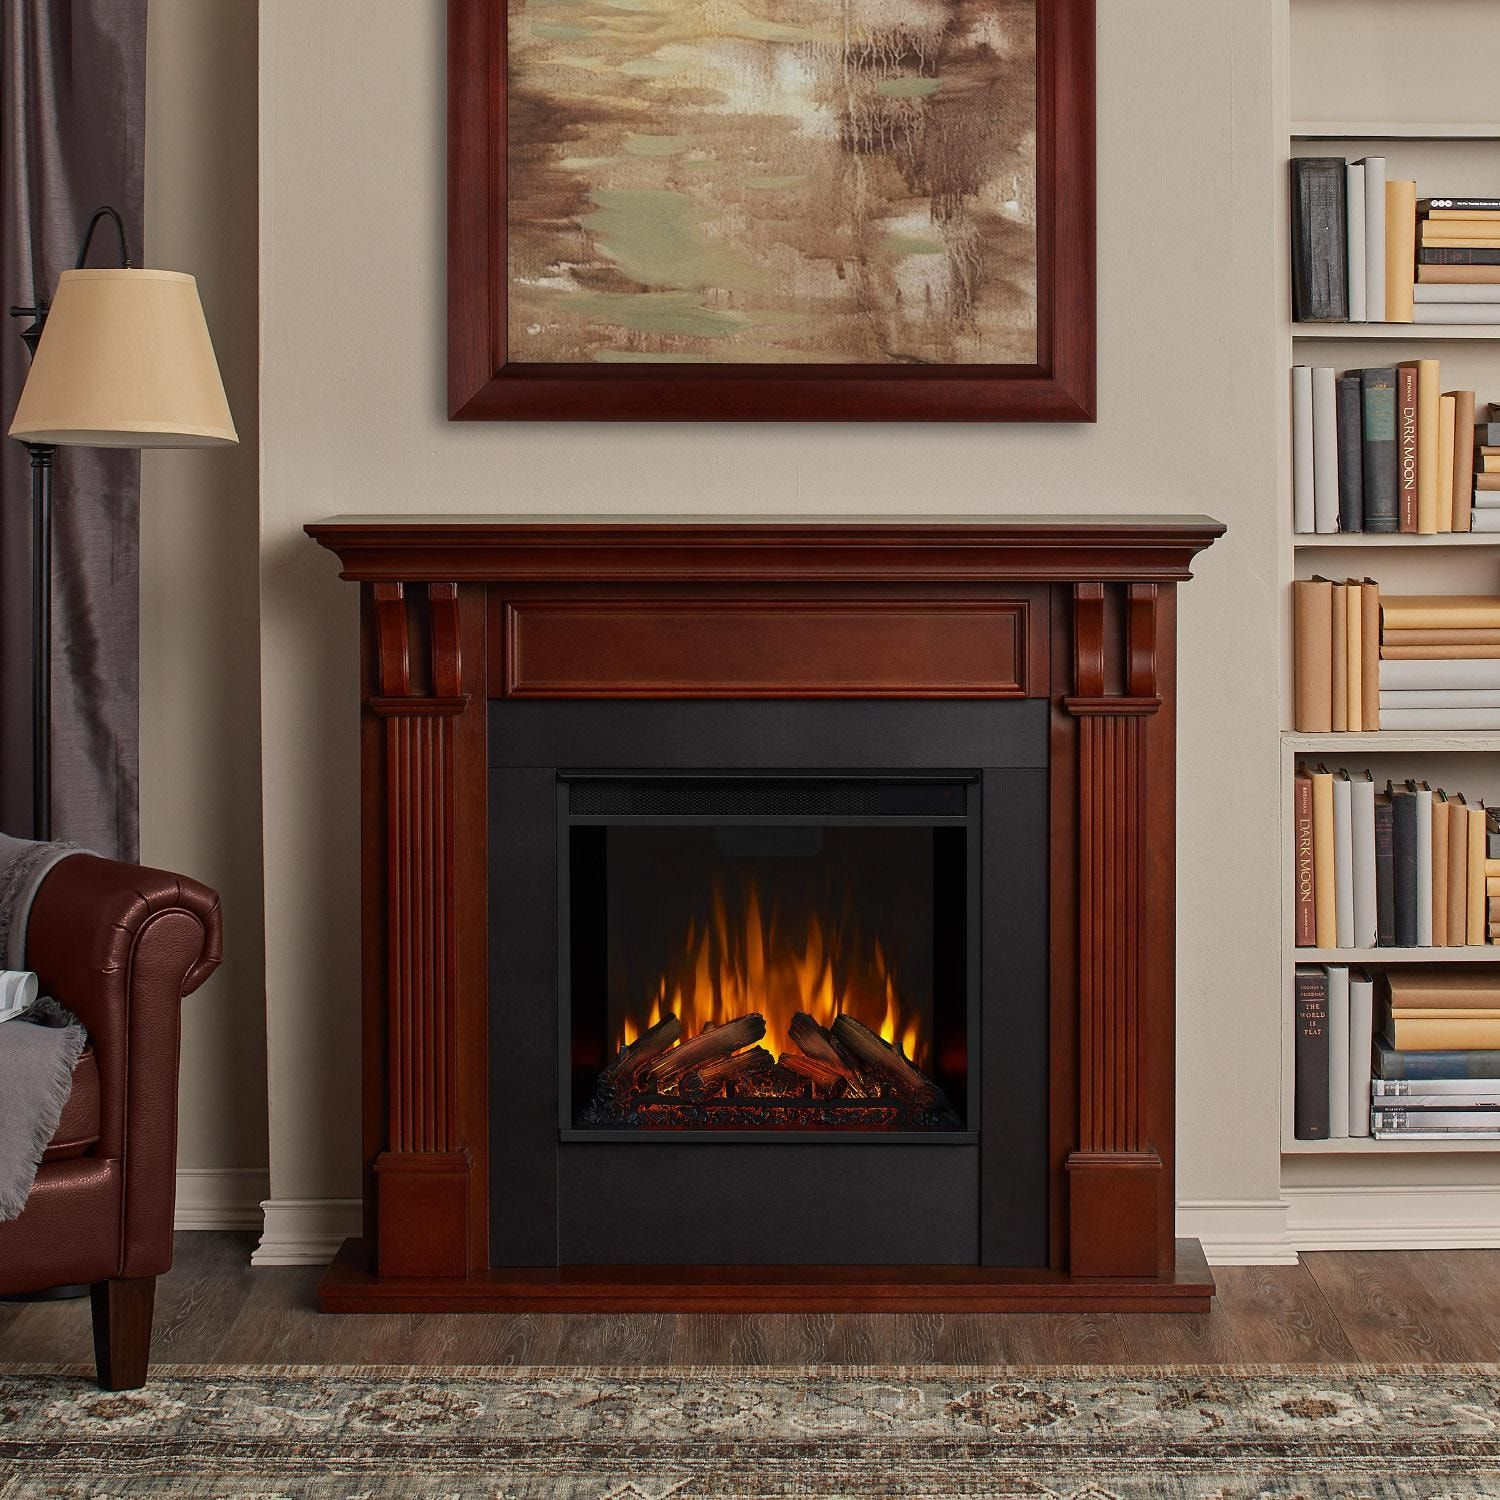 Real Flame 7100e M Ashley 48 Inch Electric Fireplace With Mantel Mahogany Bbqguys In 2021 Electric Fireplace Electric Fireplace With Mantel Fireplace